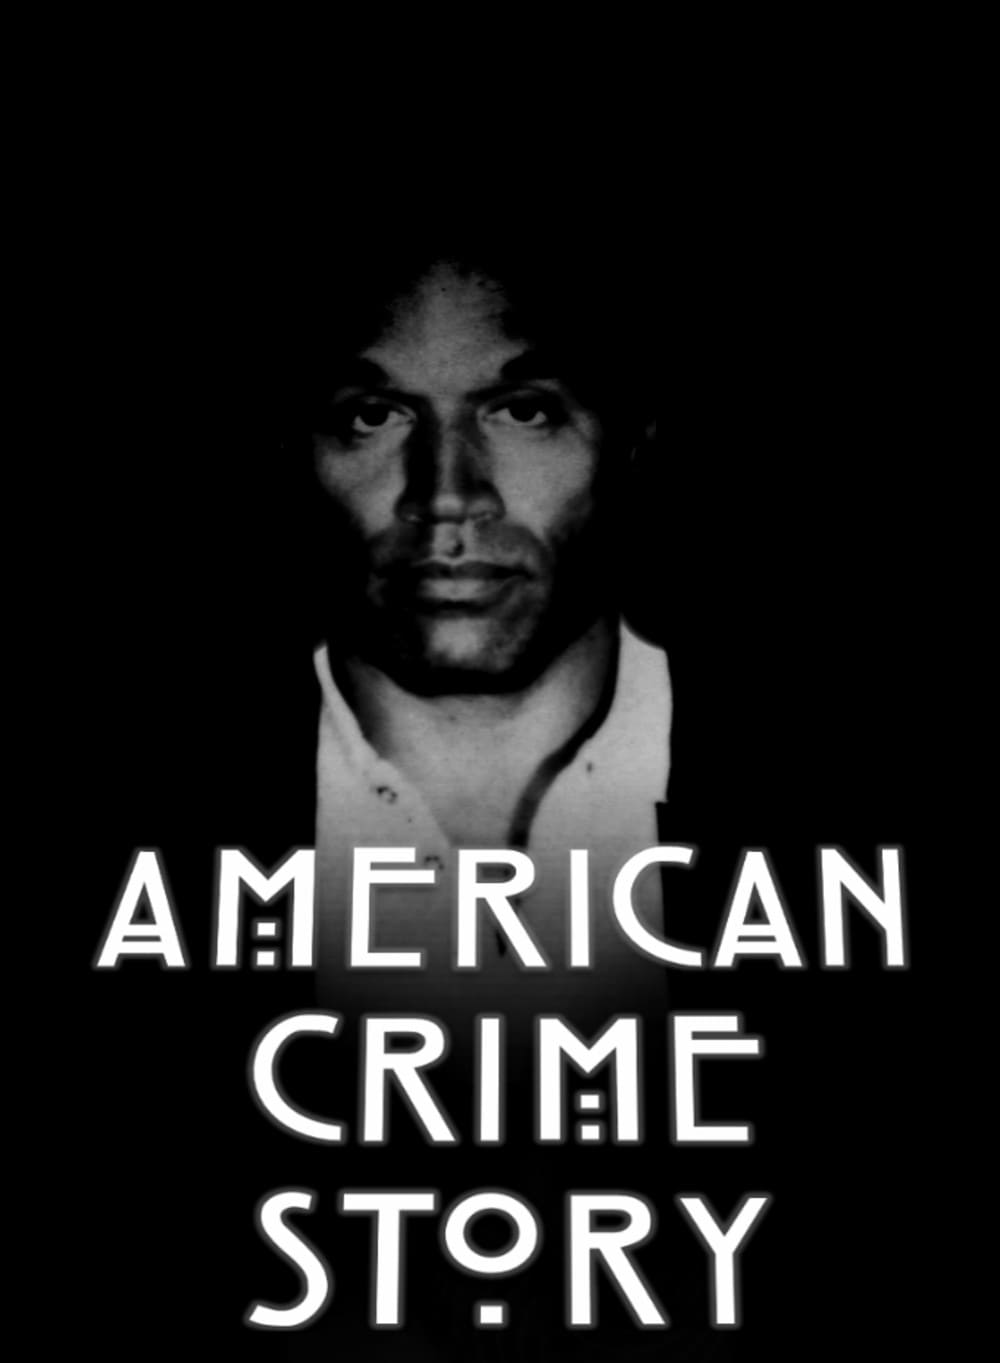 American Crime Story For mobile